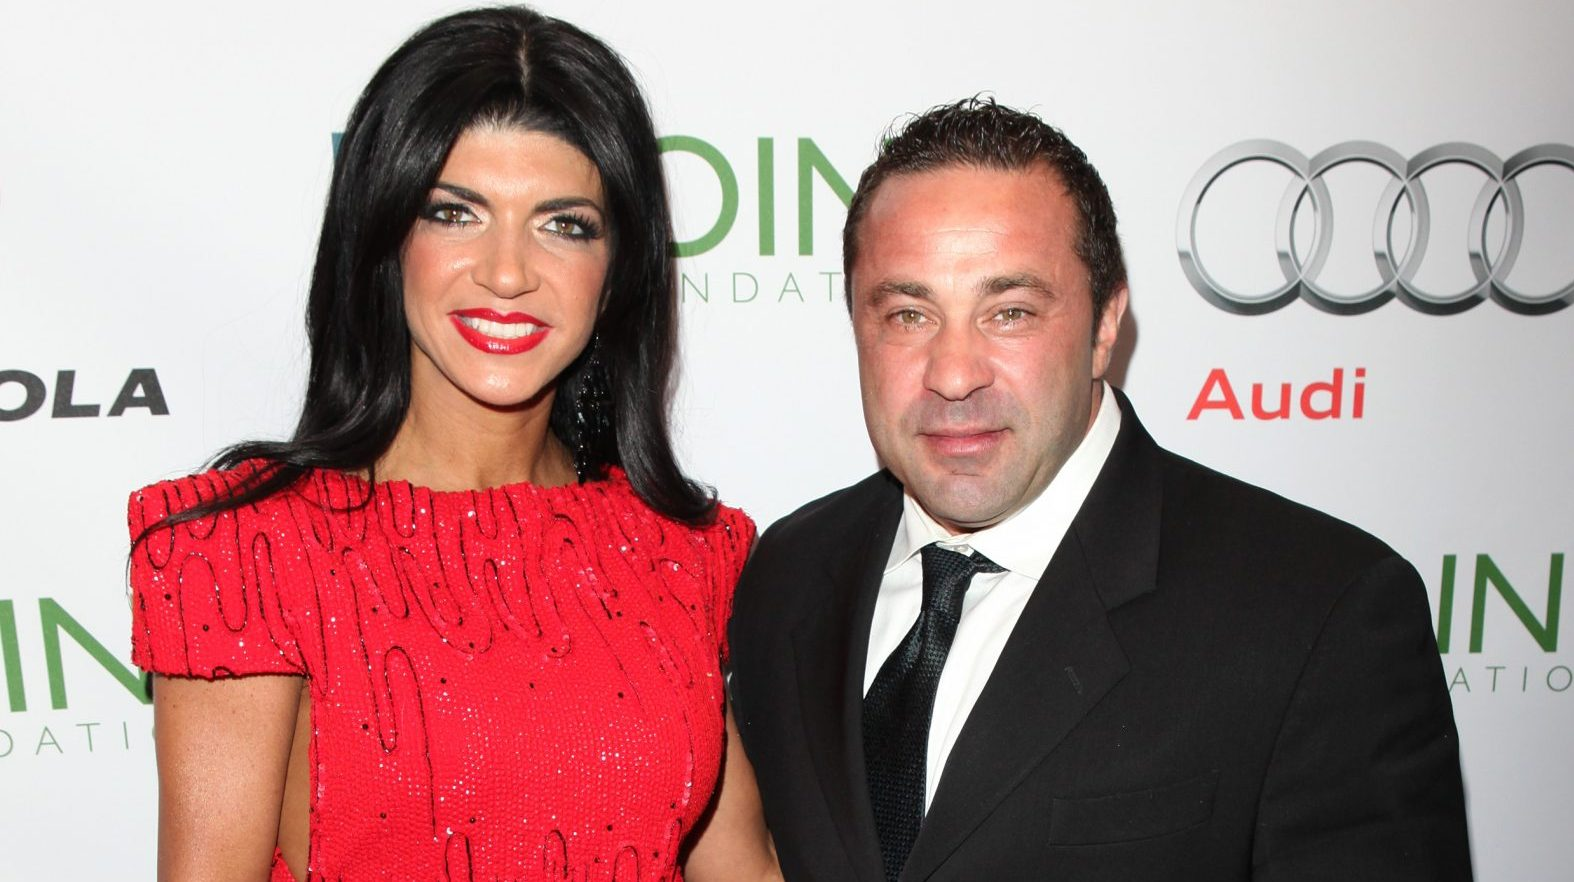 """teresa-giudice-thinks-theres-nothing-wrong-with-flirting-with-other-guys-while-hubby-joe-is-still-in-prison"""